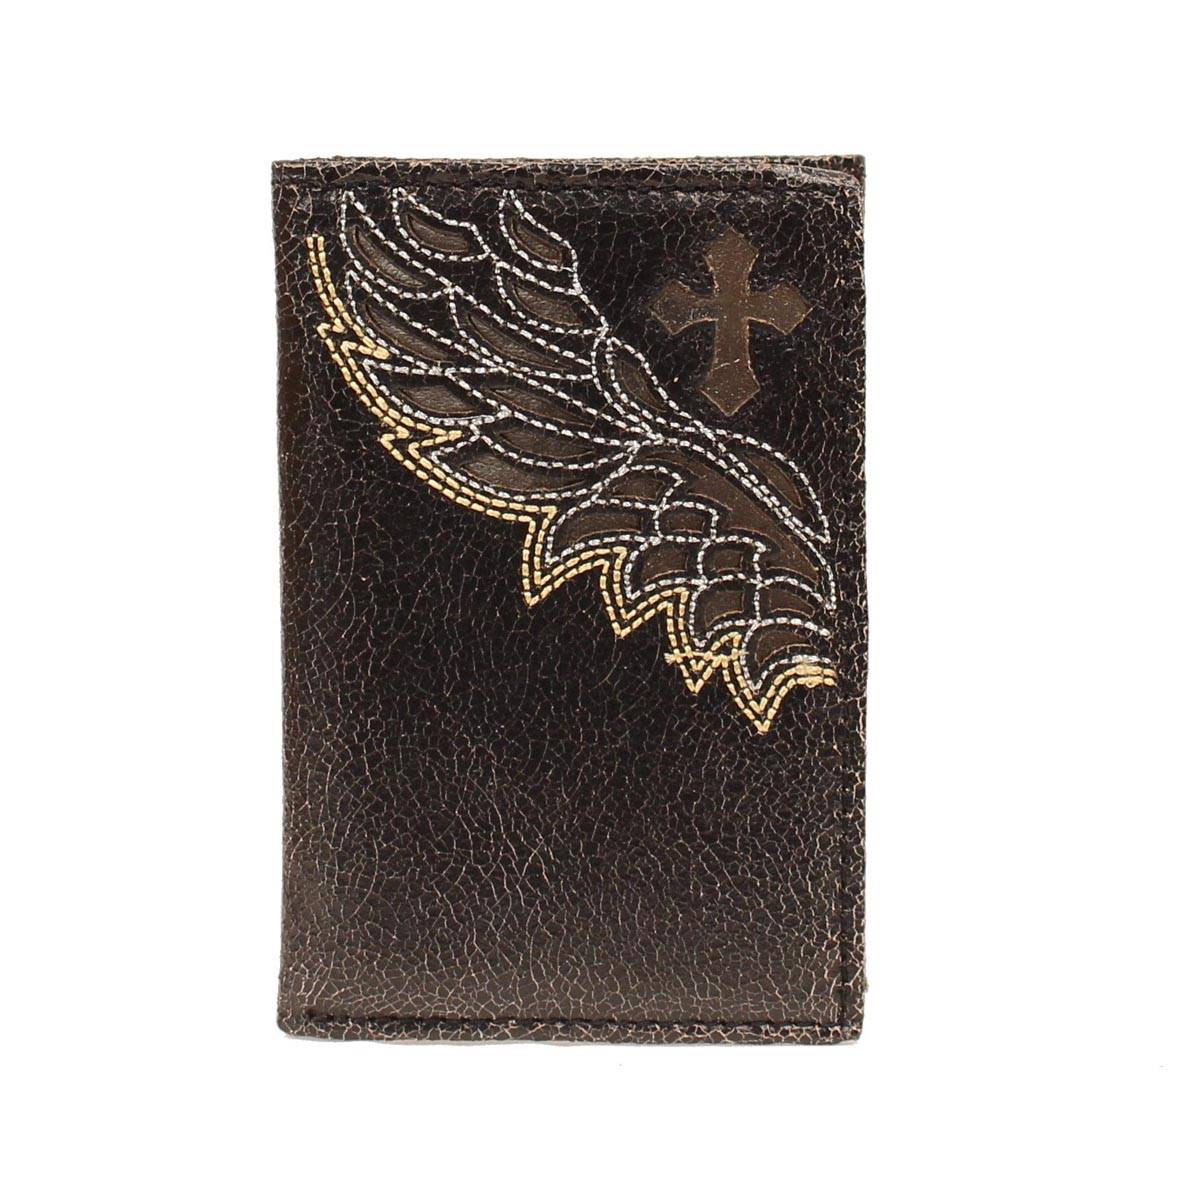 Nocona Tri-fold Cross Wing Cutout Wallet